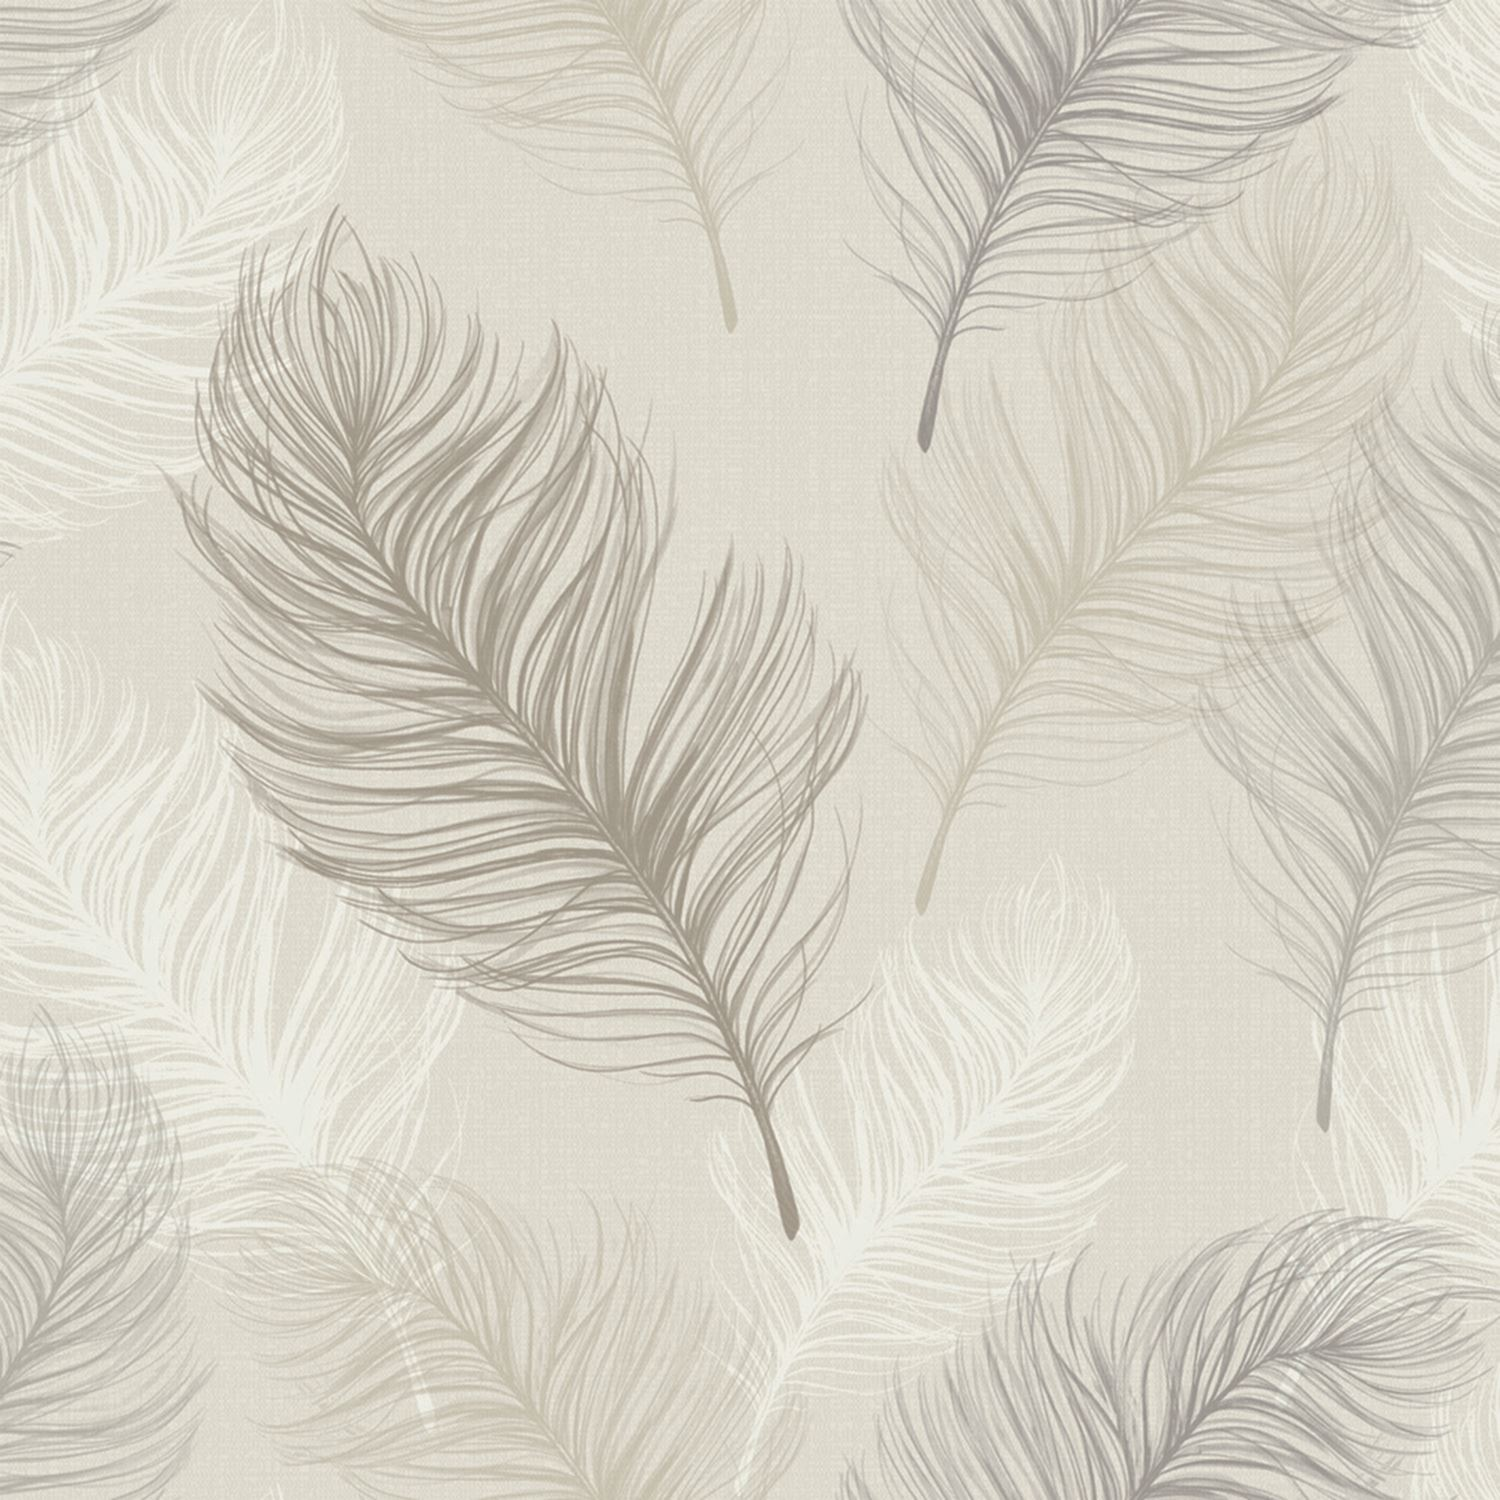 Girls bedroom wall stickers - Feather Wallpaper Rolls Taupe Arthouse 669802 Bedroom Wall Decor